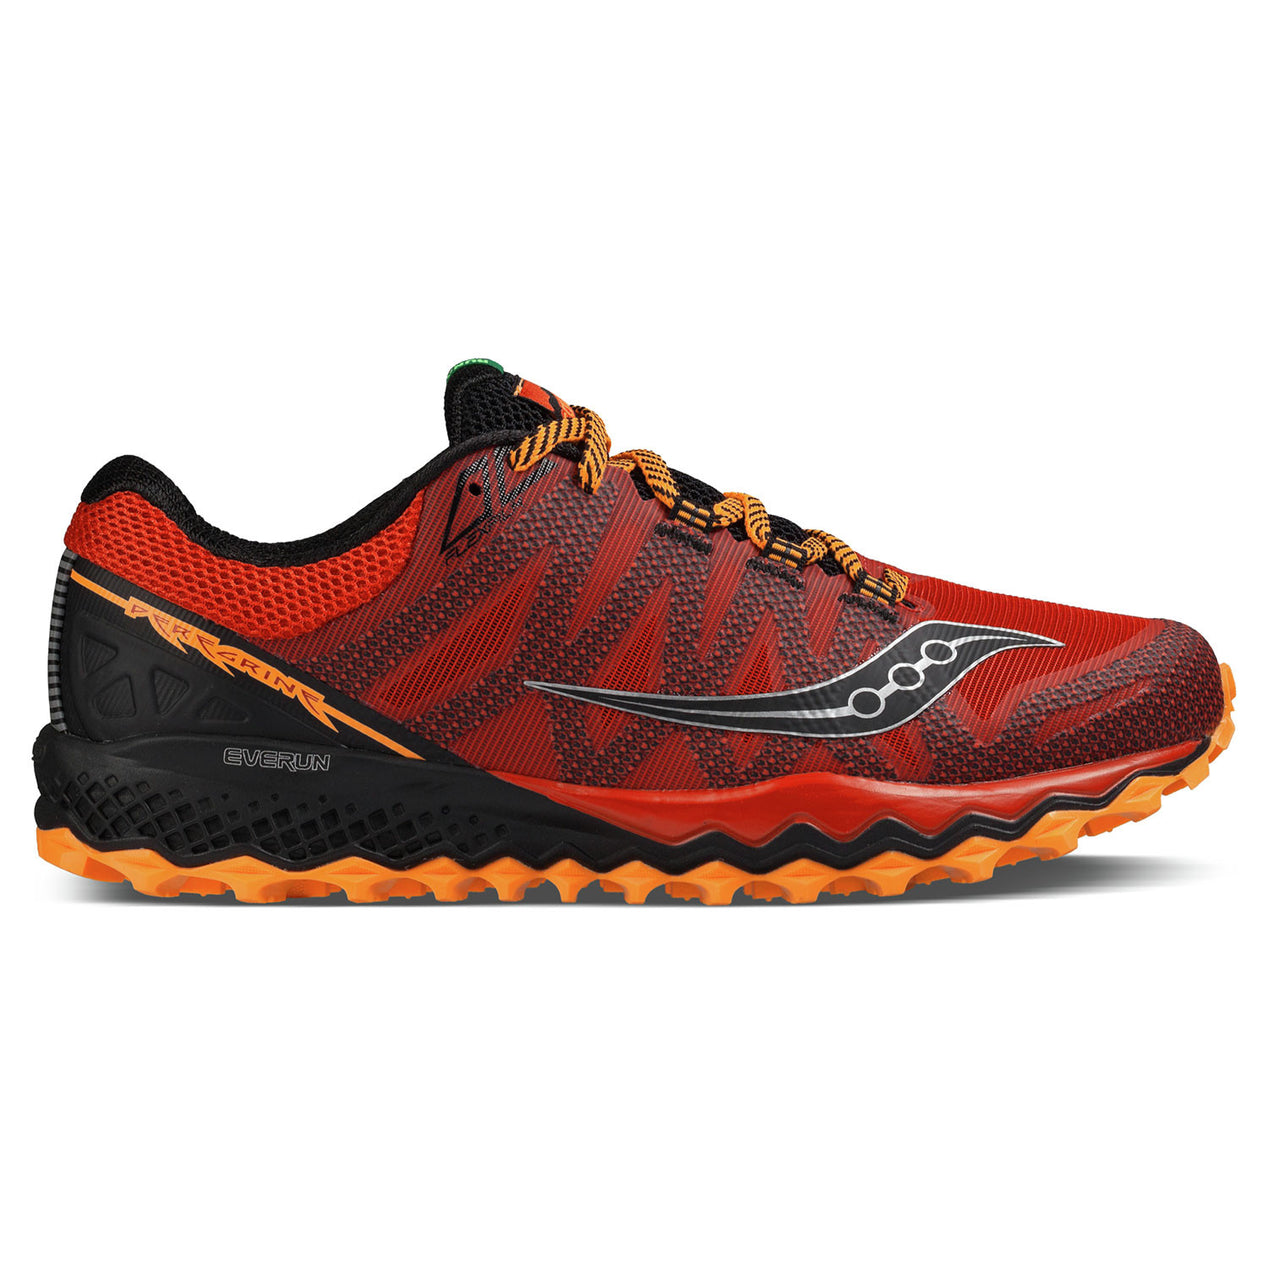 4e27e4221180 Saucony Men s Peregrine 7 Running Shoes